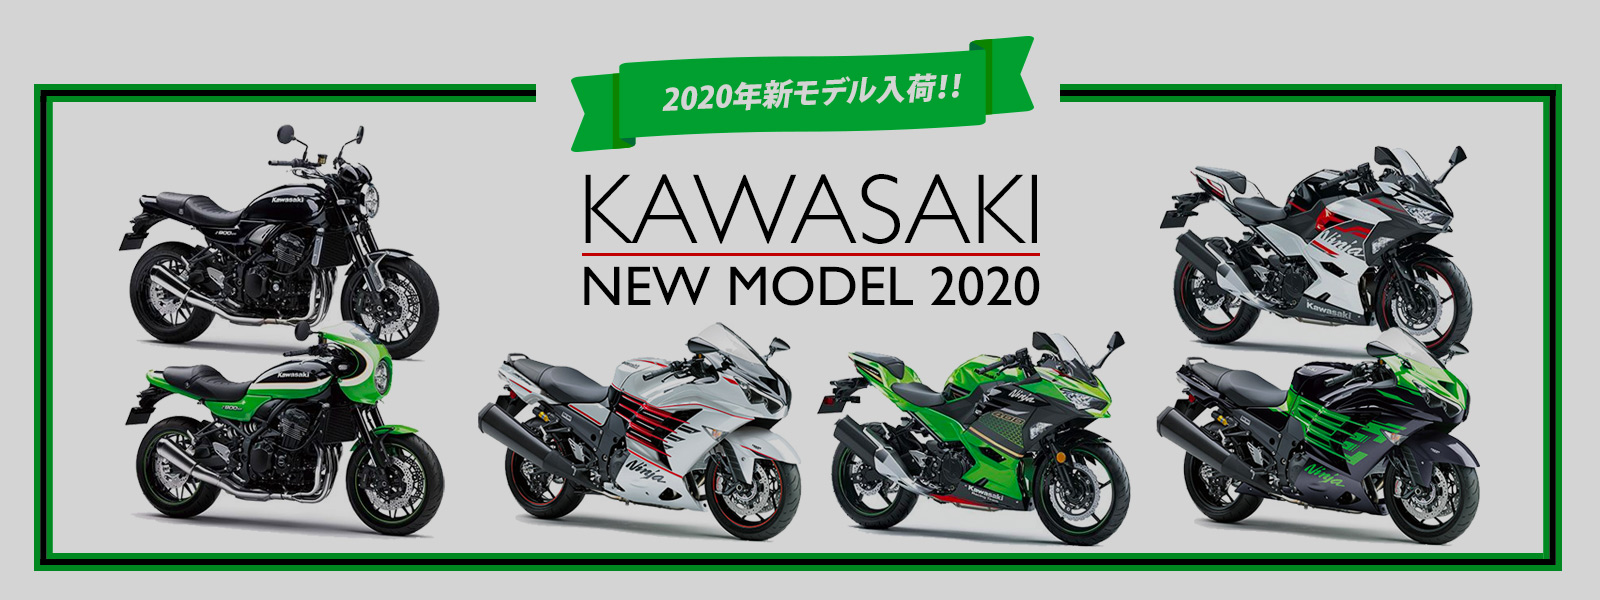 KAWASAKI NEW MODEL 2020モデル入荷